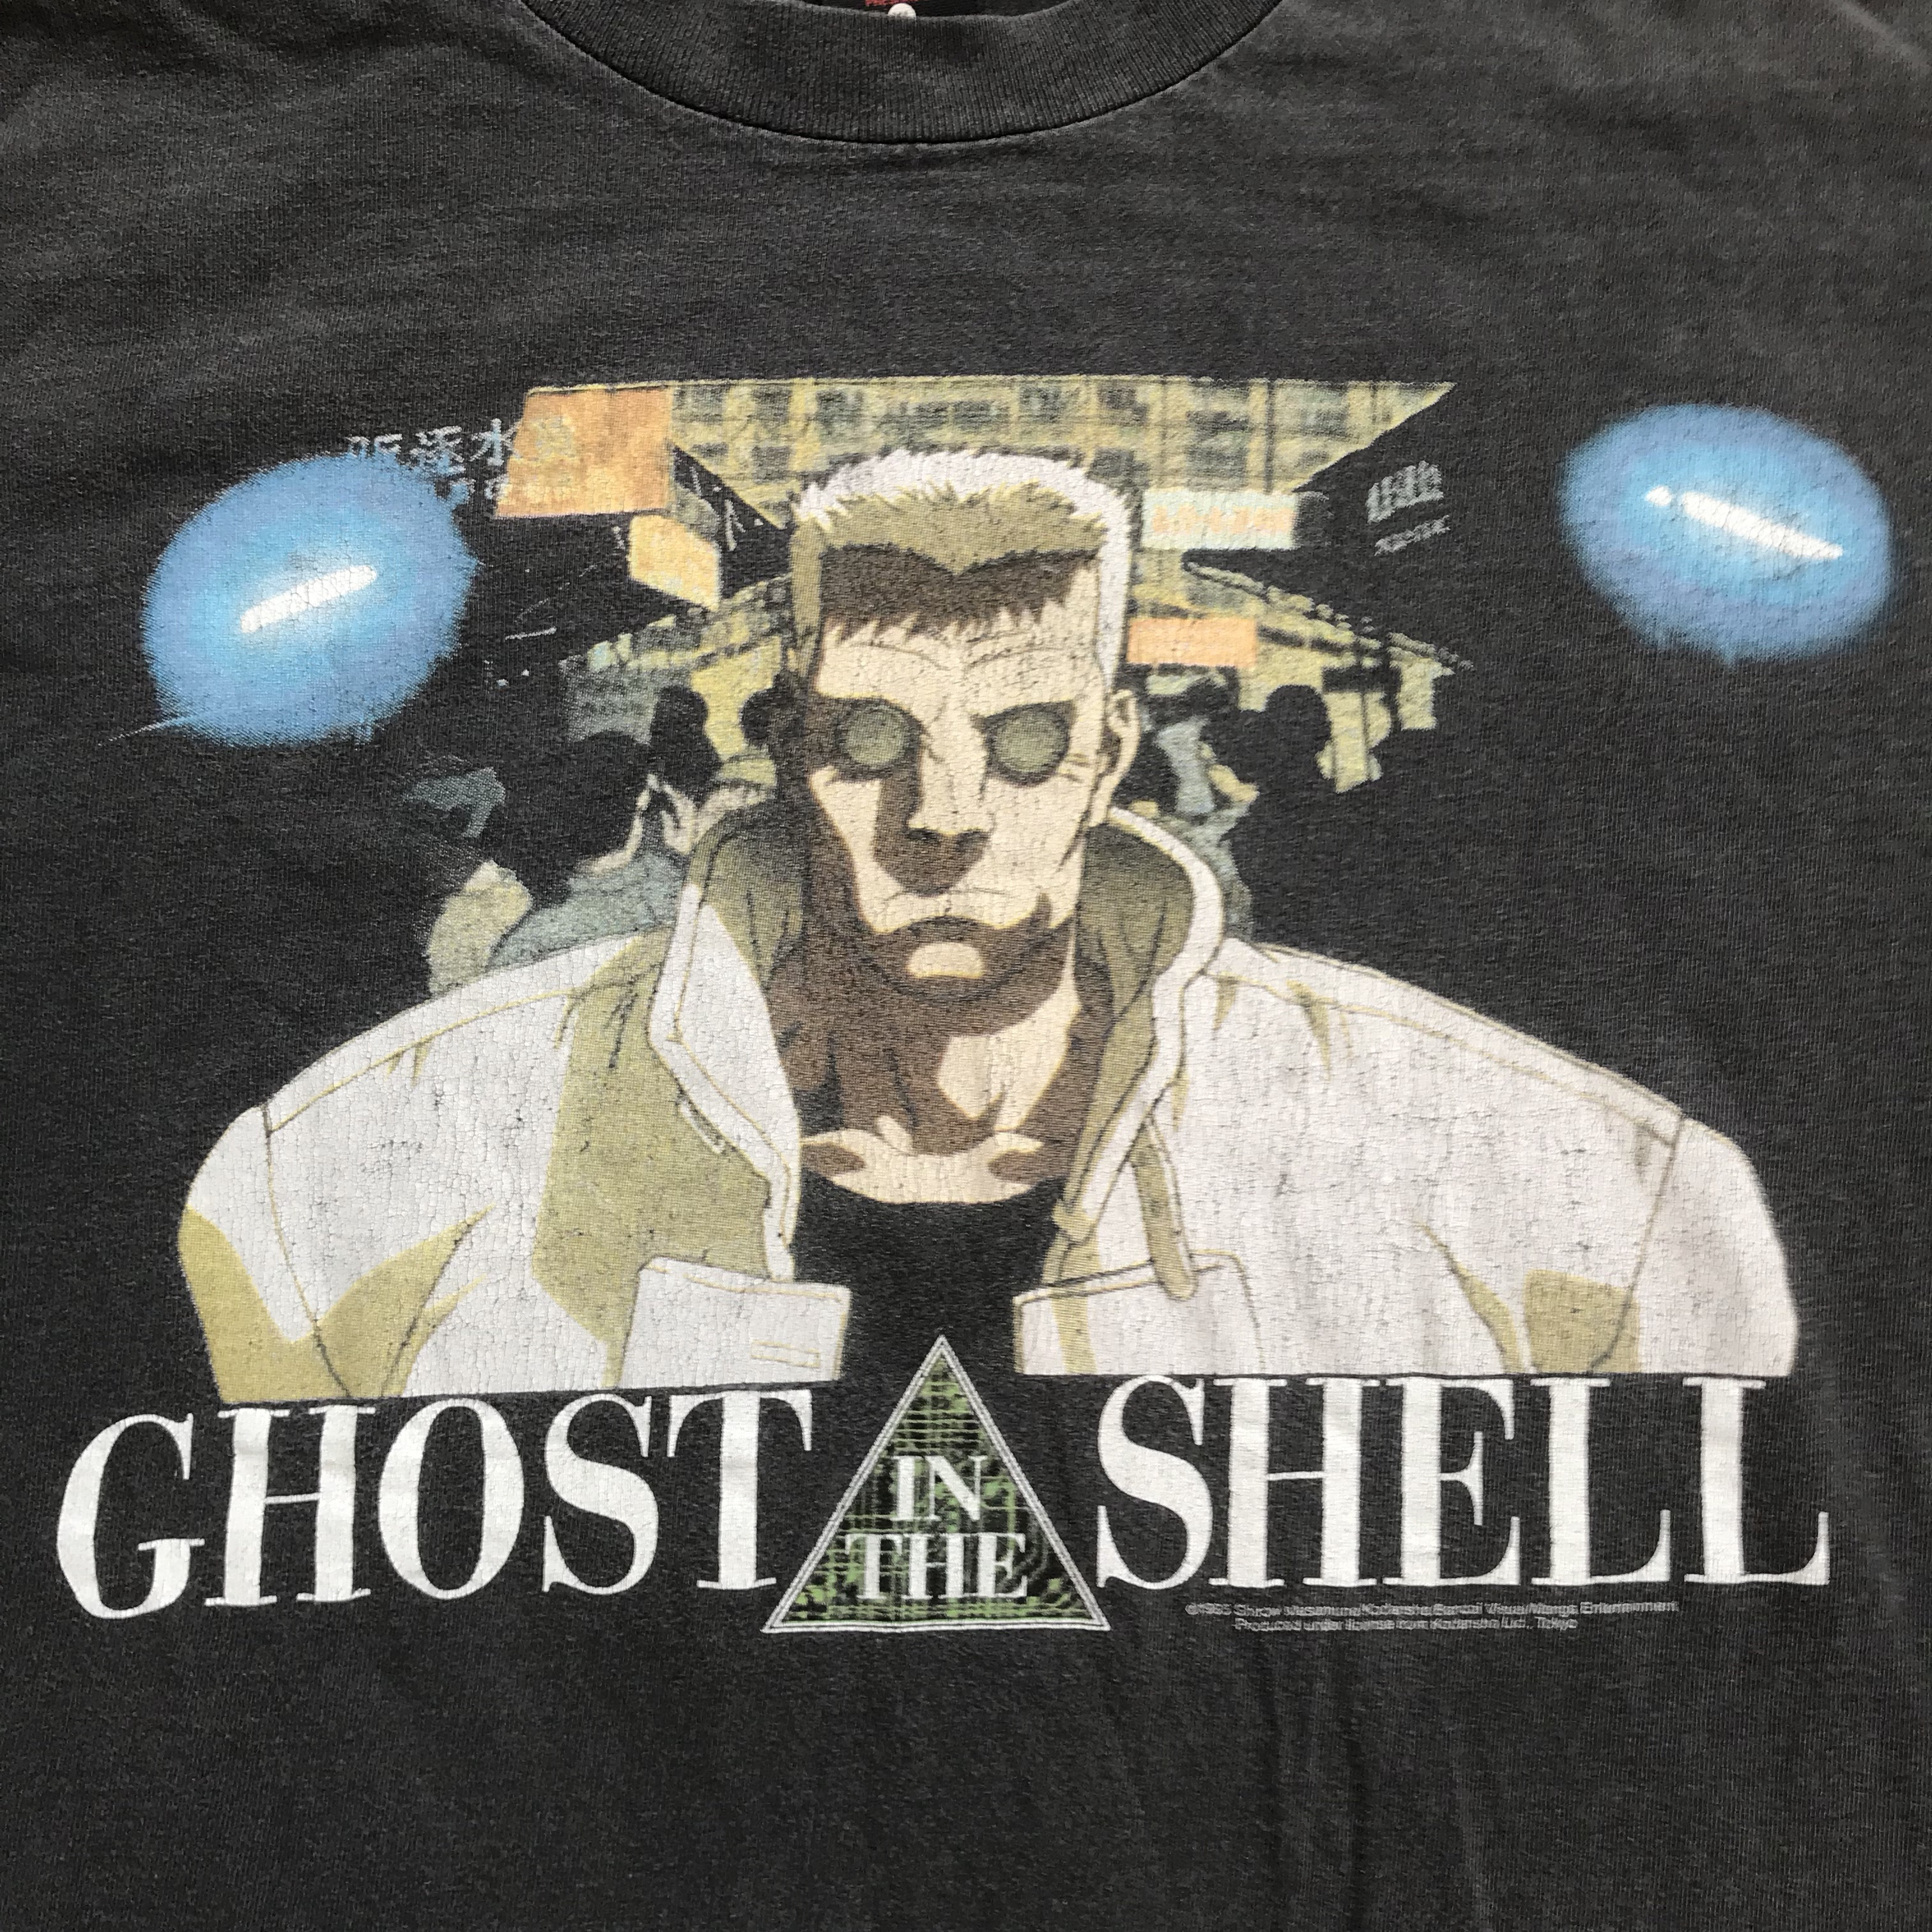 1995 Perfectly Worn Vintage 90s Anime T Shirt Ghost Depop